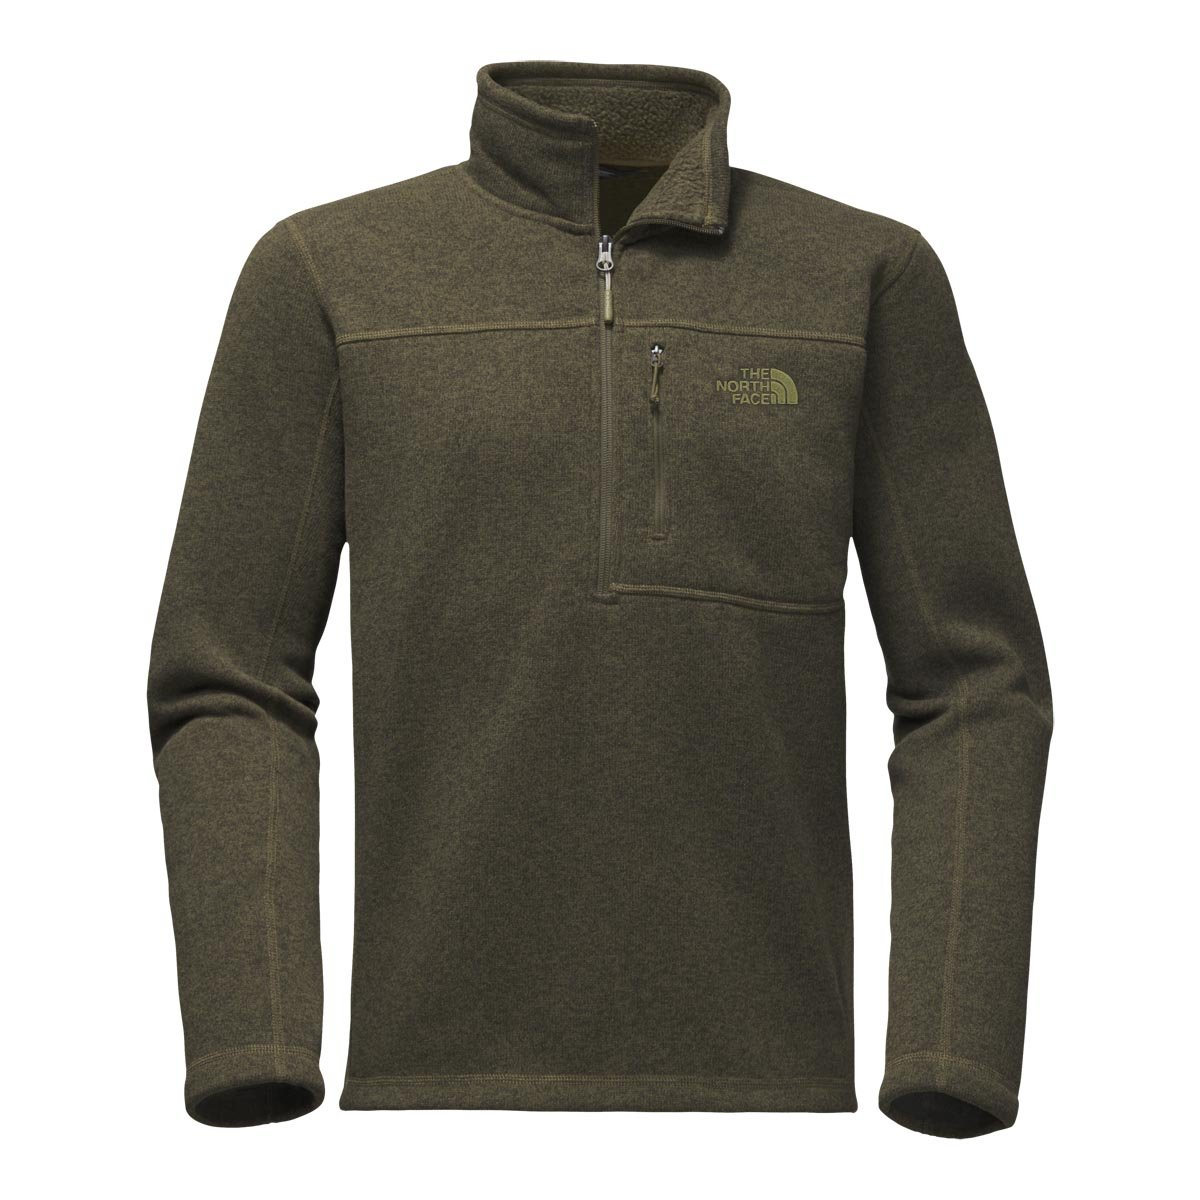 The North Face Men's Gordon Lyons 1/4 Zip - New Taupe Green Heather - 3XL (Past Season) by The North Face